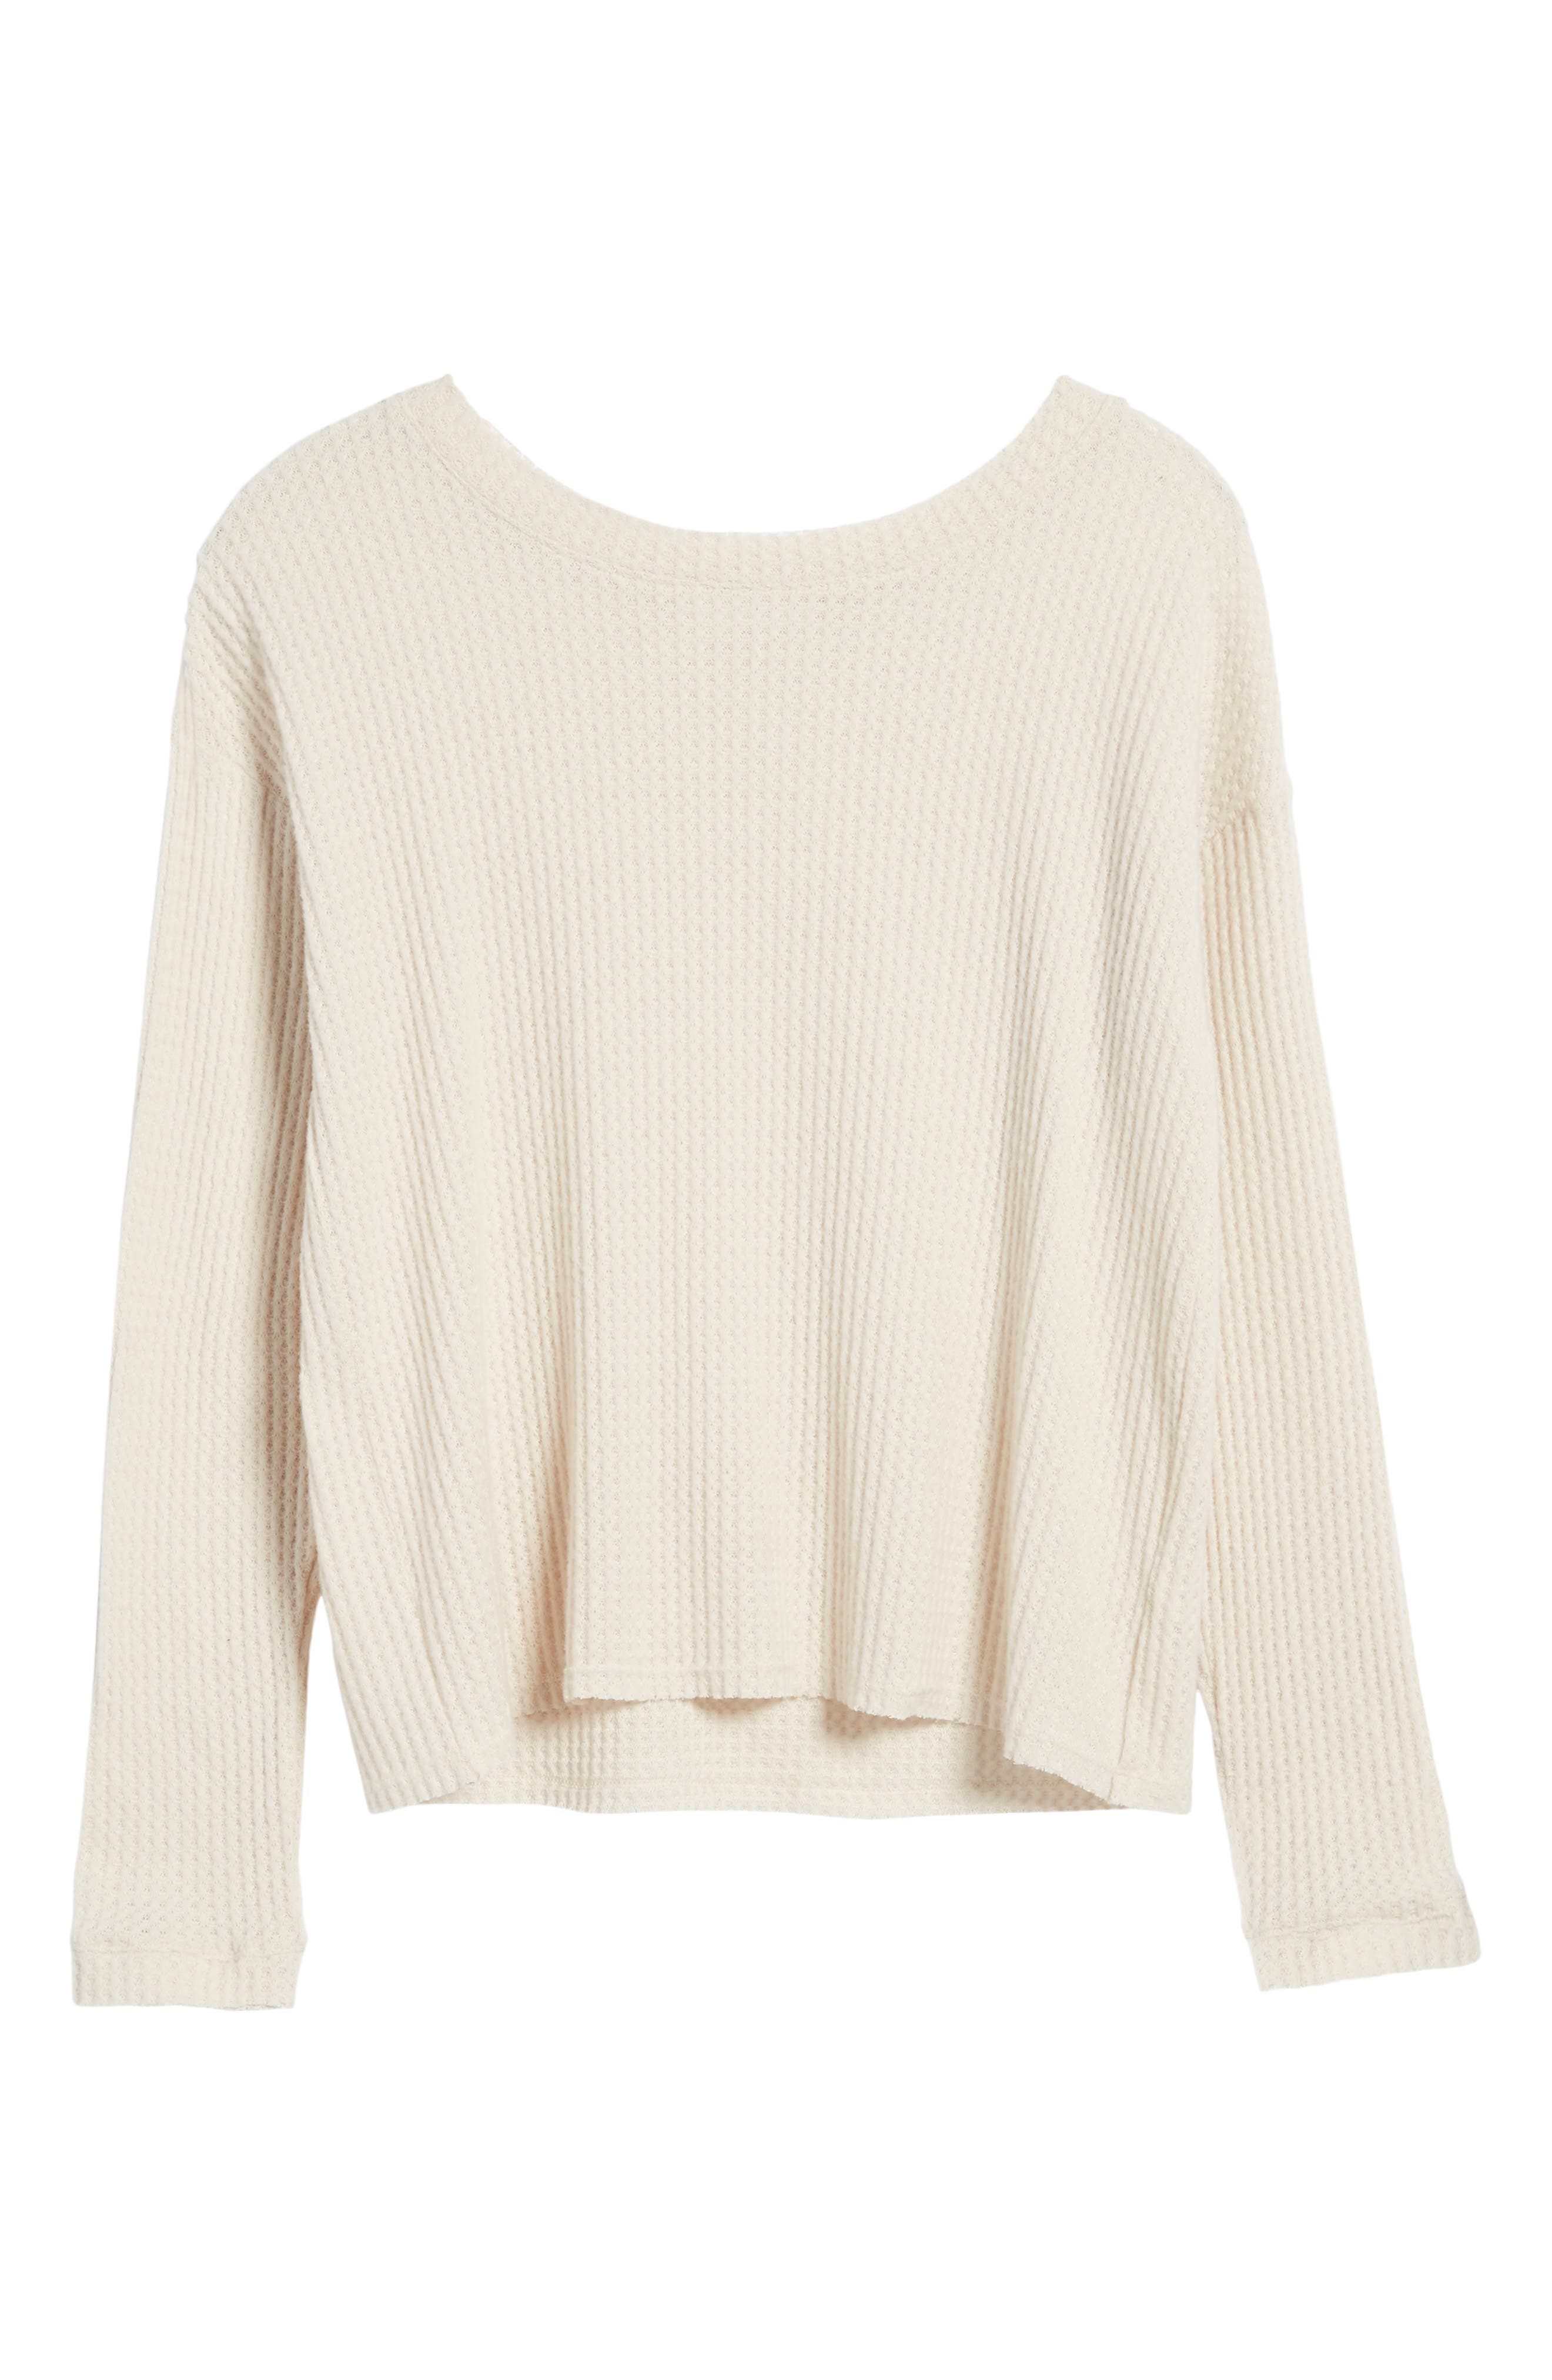 Waffle Knit Top,                             Alternate thumbnail 23, color,